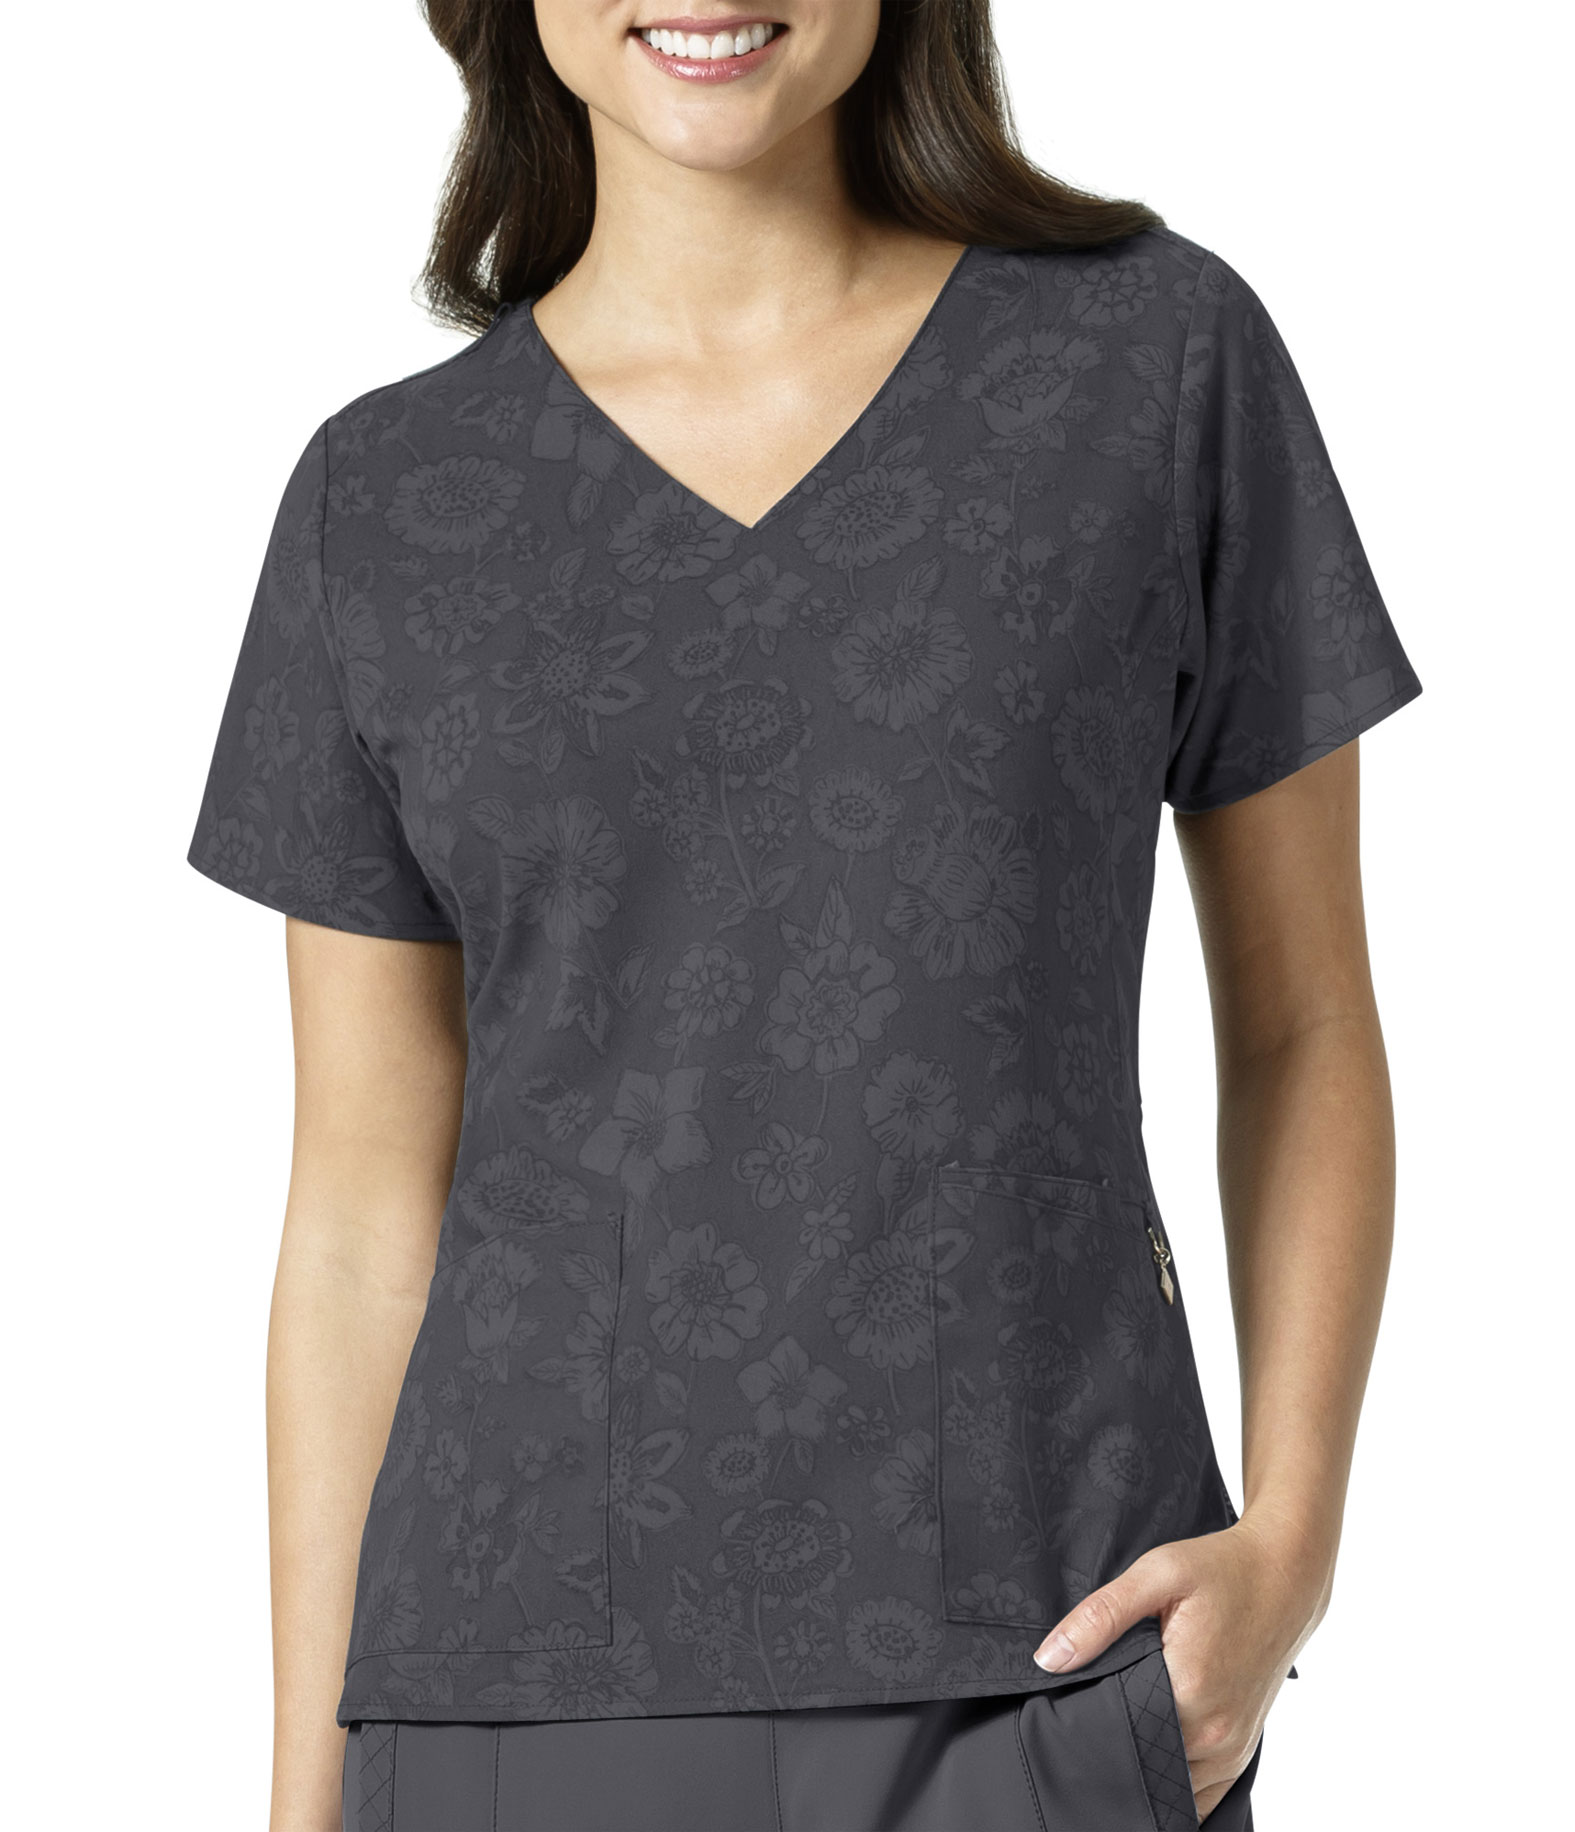 Pewter Floral Ladies V-Neck by Vera Bradley